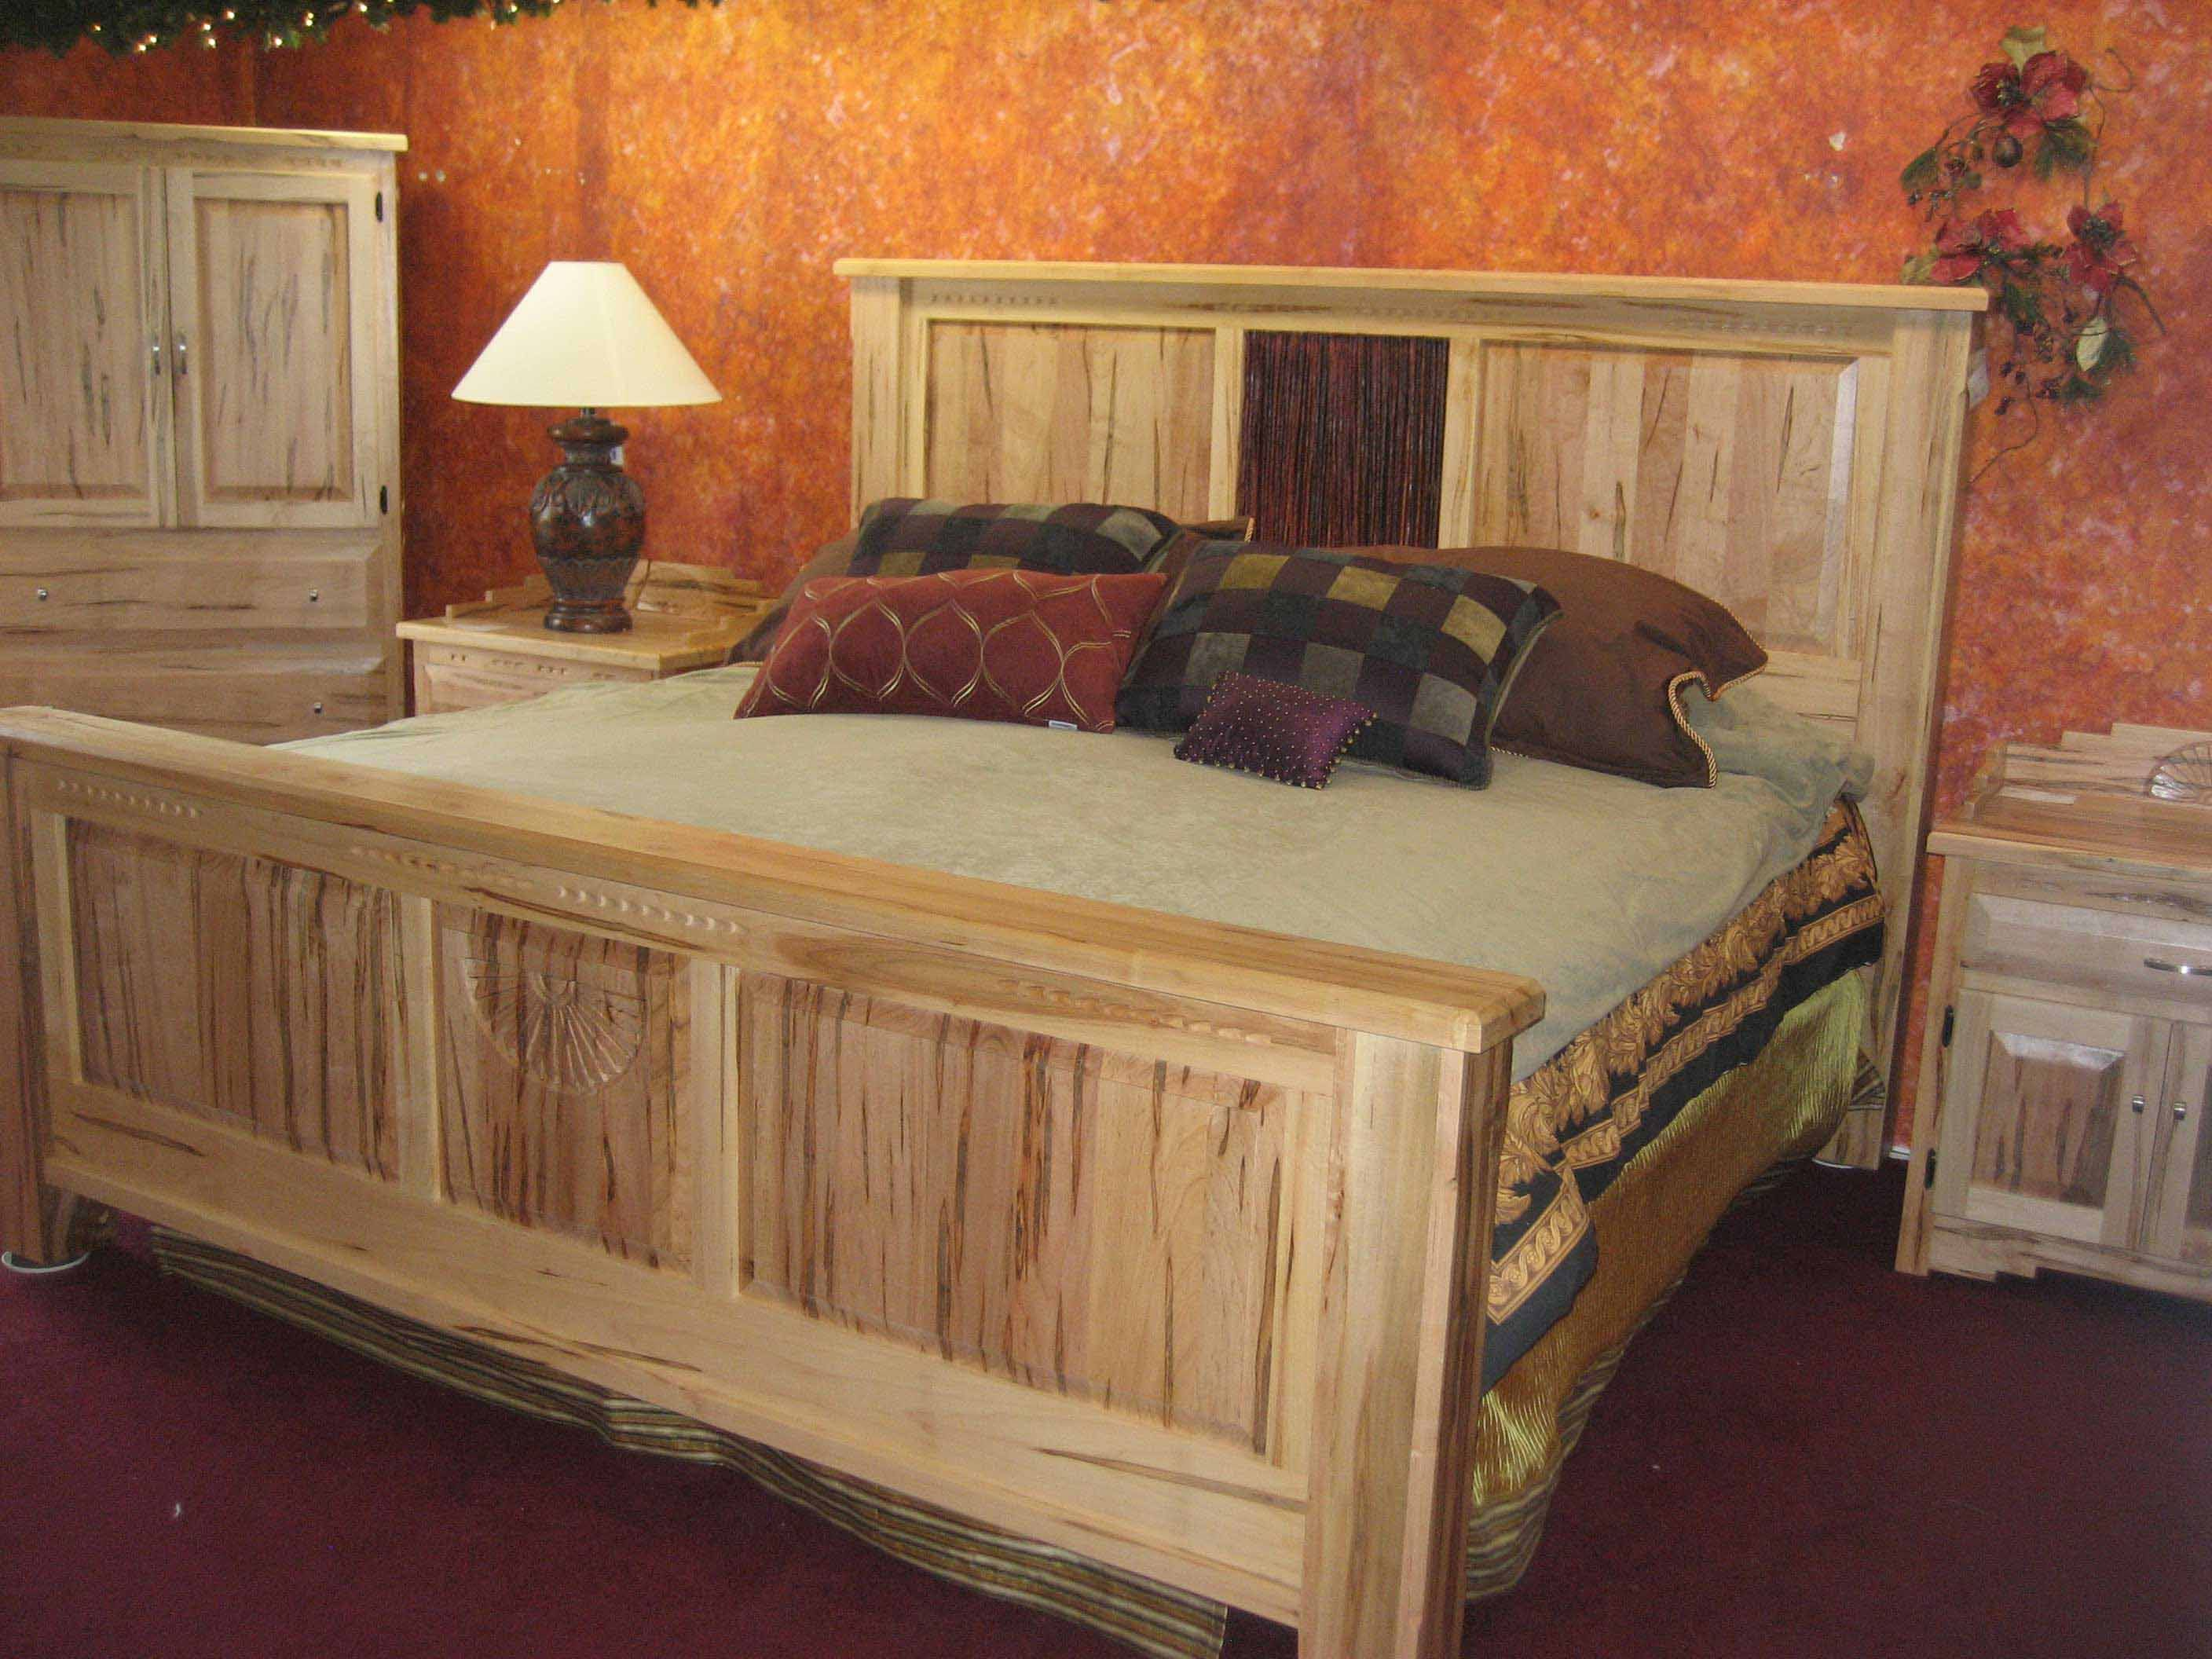 All Wood Bedroom Furniture Cool Rustic Design Ideas With Brown Oak Wood  Platform Bed And Headboard. Wormy maple bed for your bedroom   Southwest Interiors Furniture